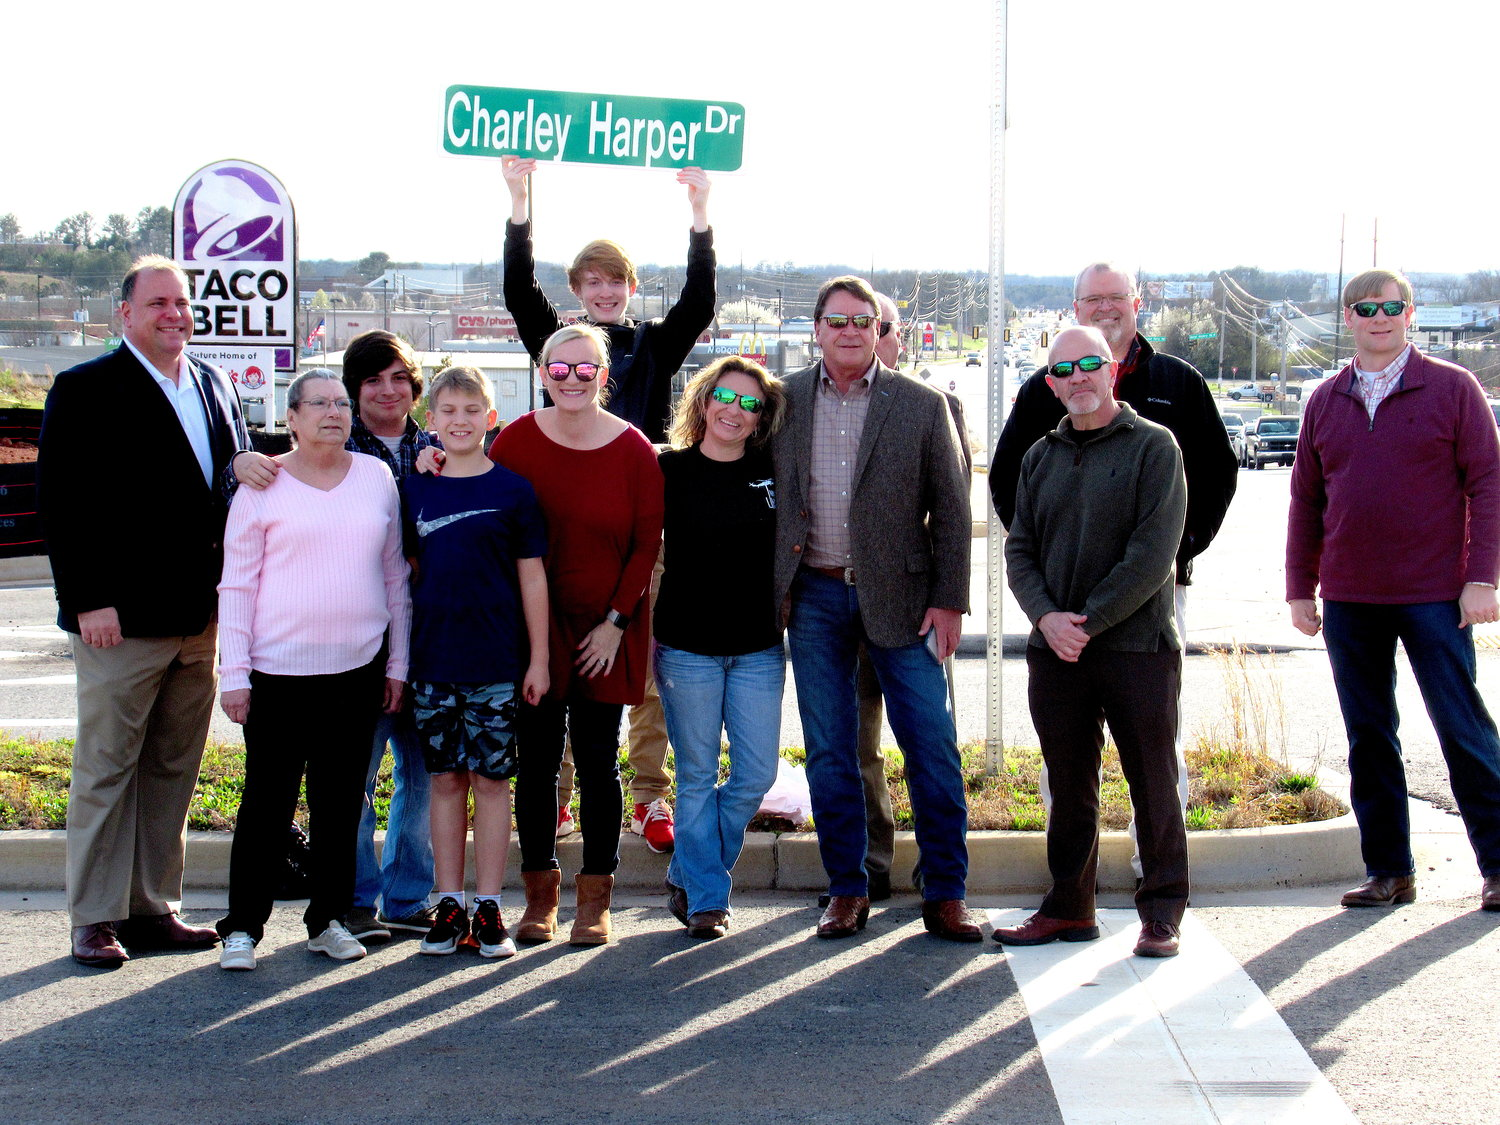 About a dozen people turned out Monday afternoon for a dedication ceremony officially renaming Village Hill Drive in West Cartersville after the late Charley Harper.